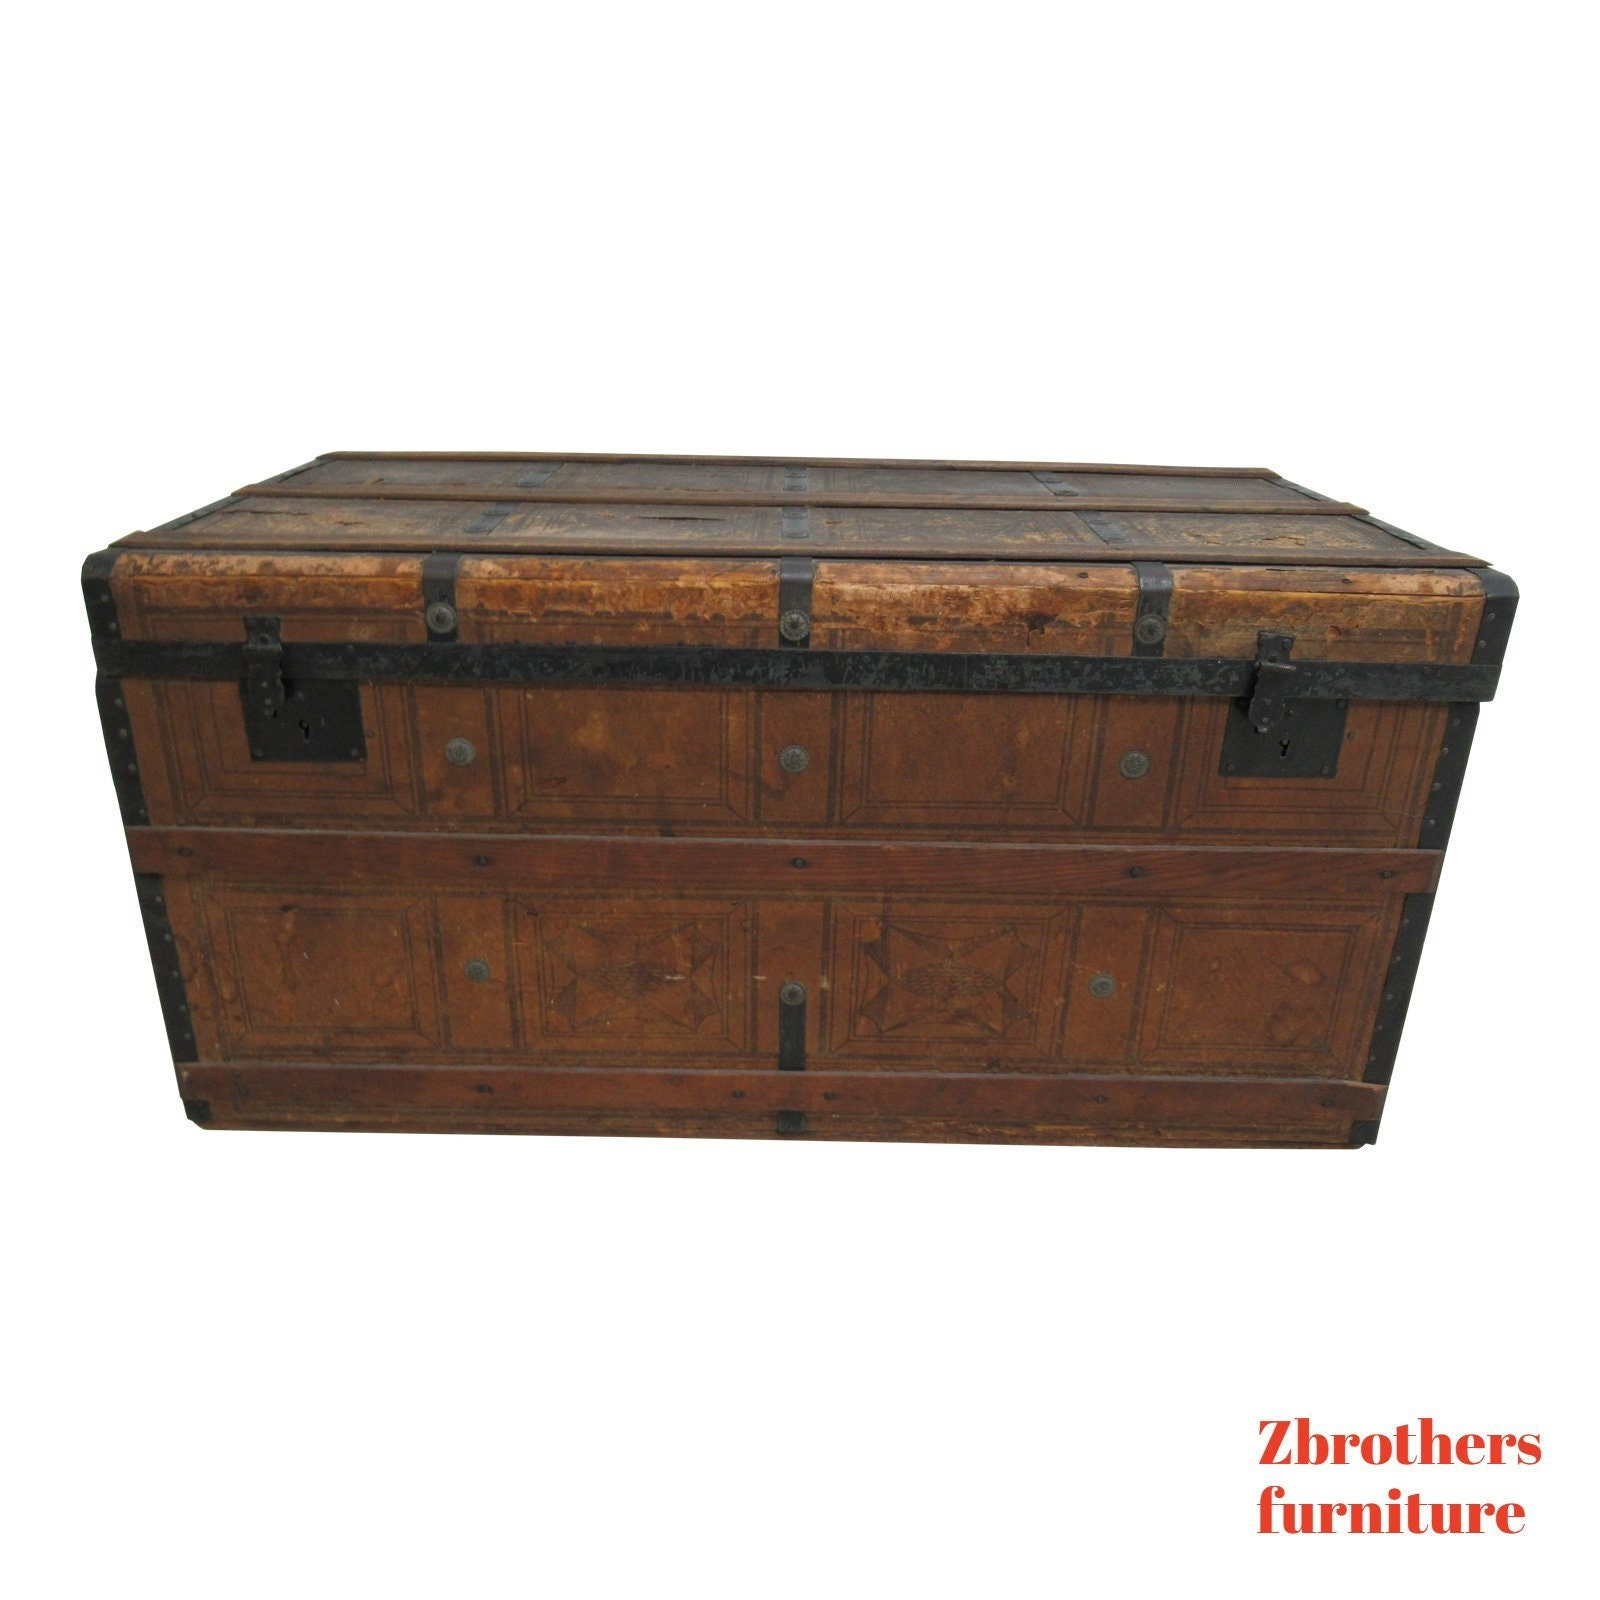 Excellent Antique Steamer Trunk Storage Chest Coffee Table Onthecornerstone Fun Painted Chair Ideas Images Onthecornerstoneorg